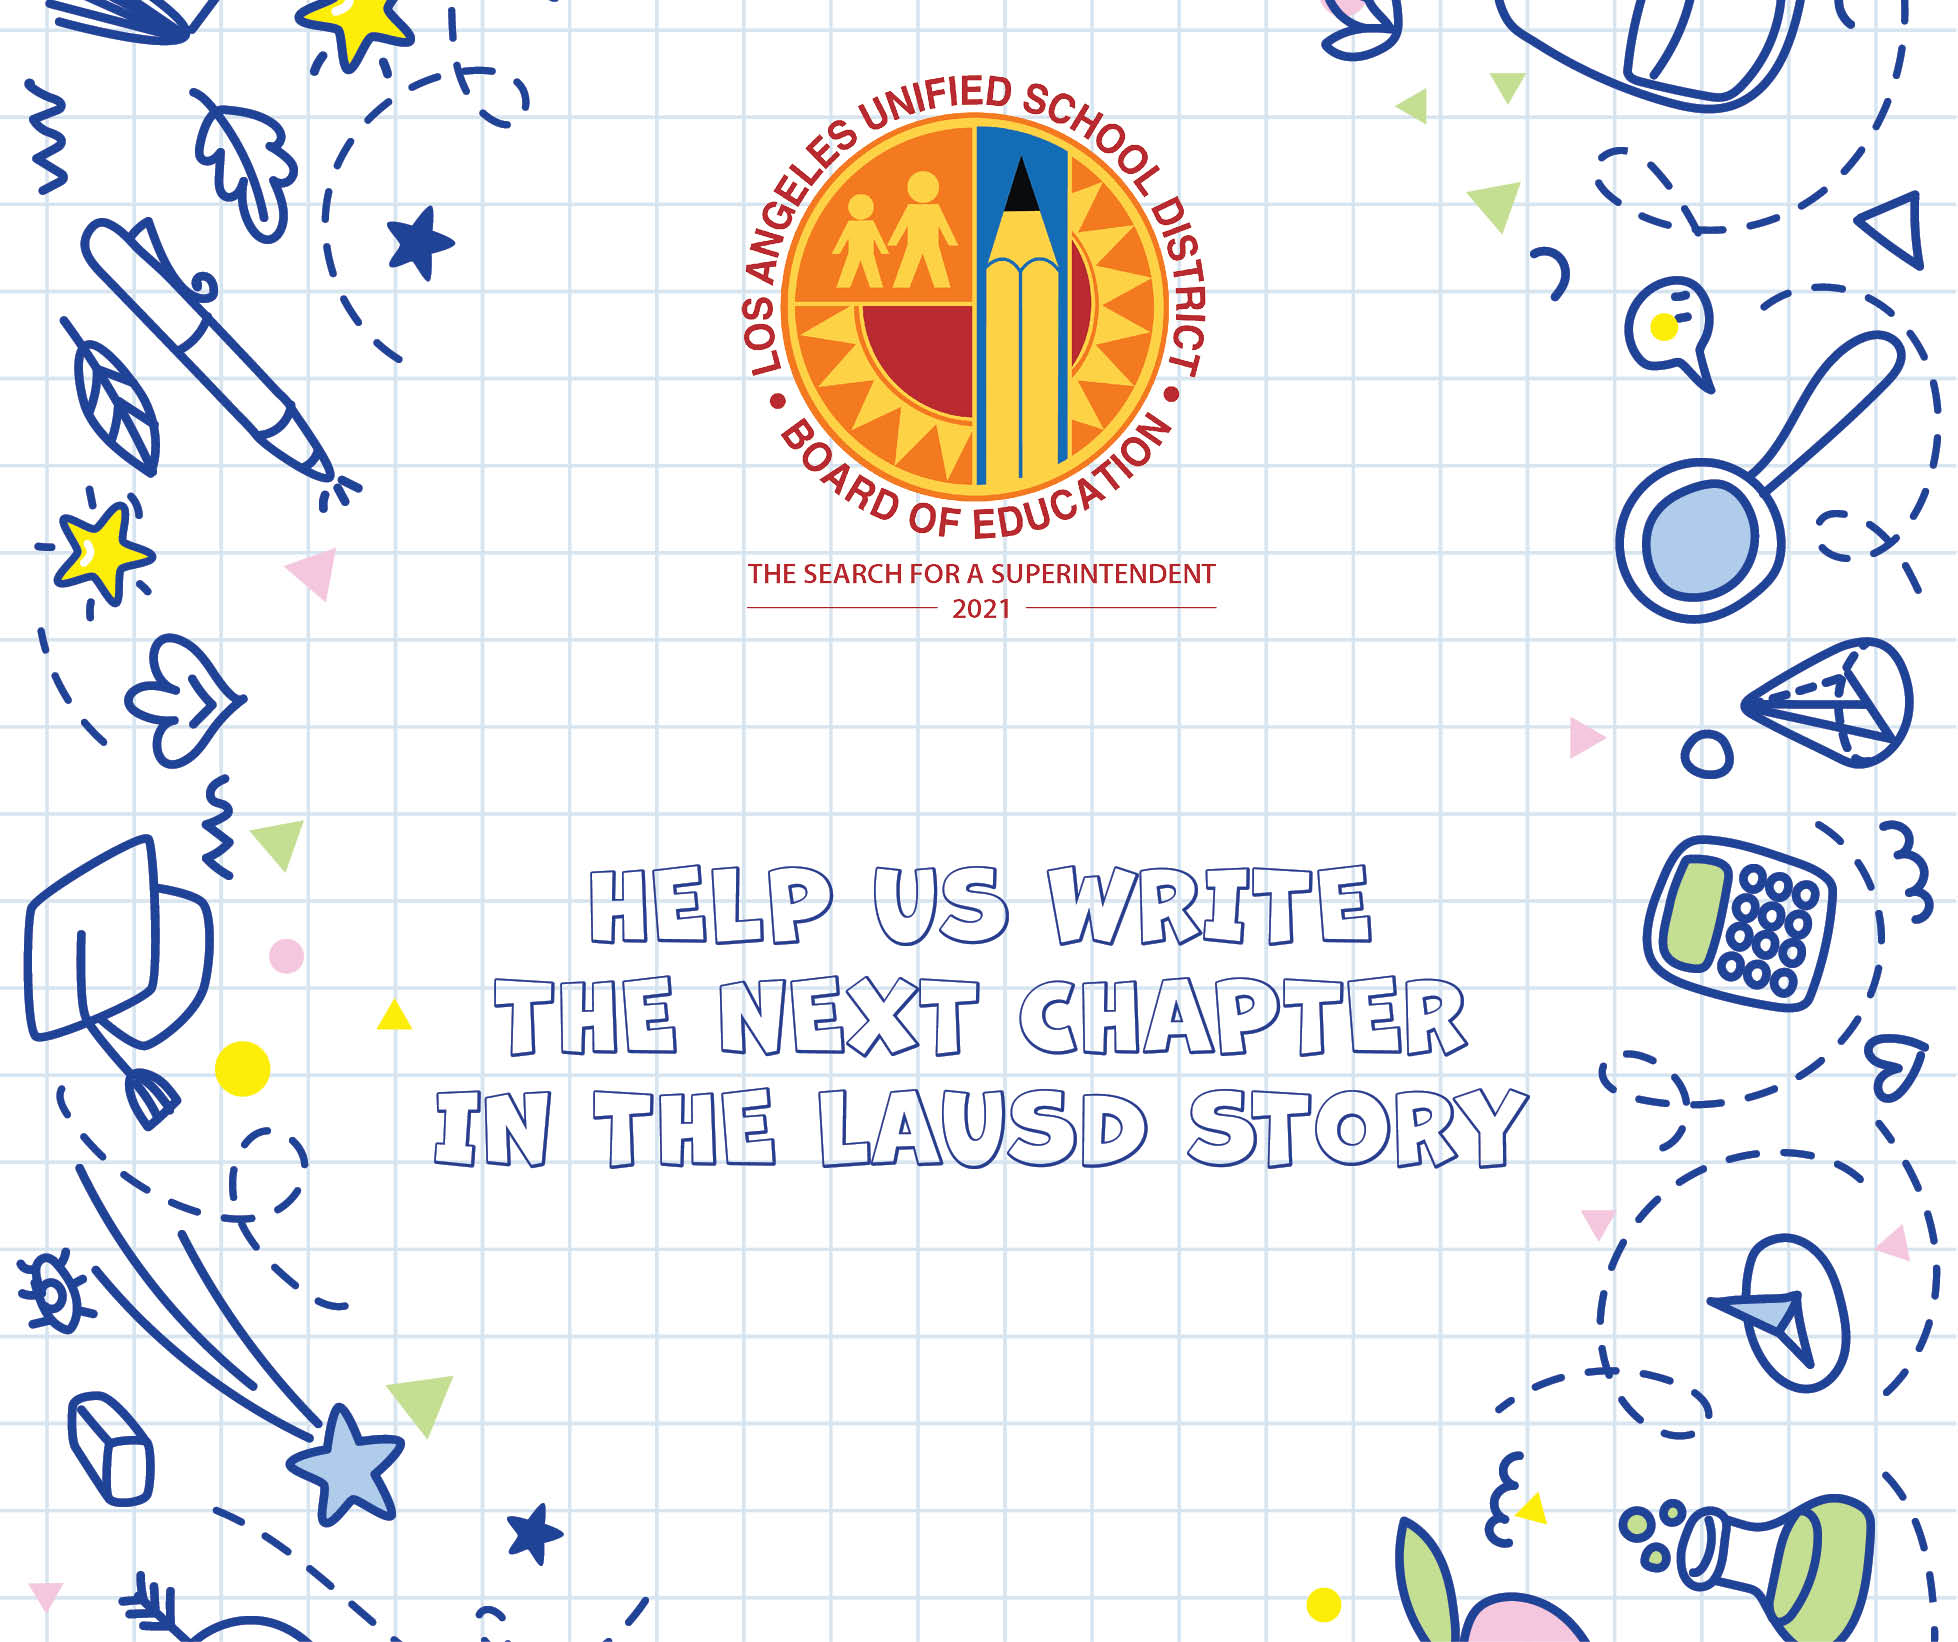 Help write the next chapter in LAUSD